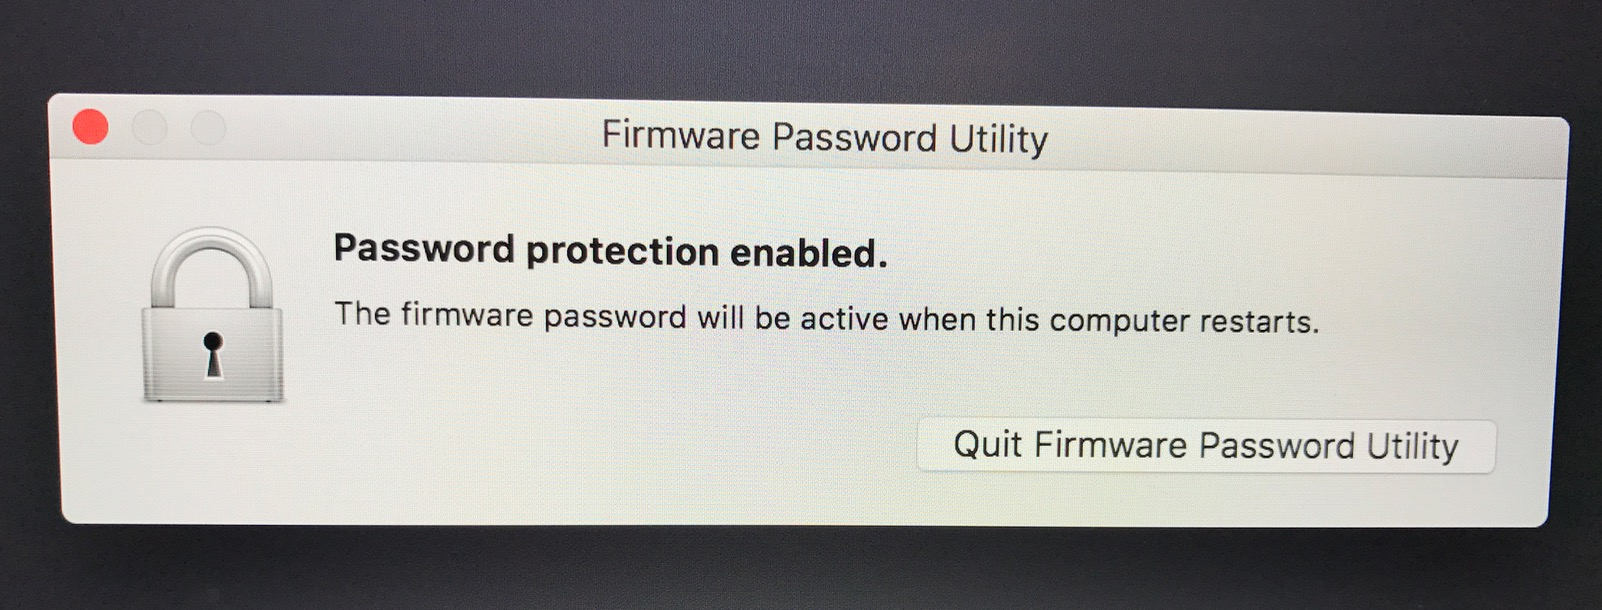 Firmware Password Utility shows password protection Enabled